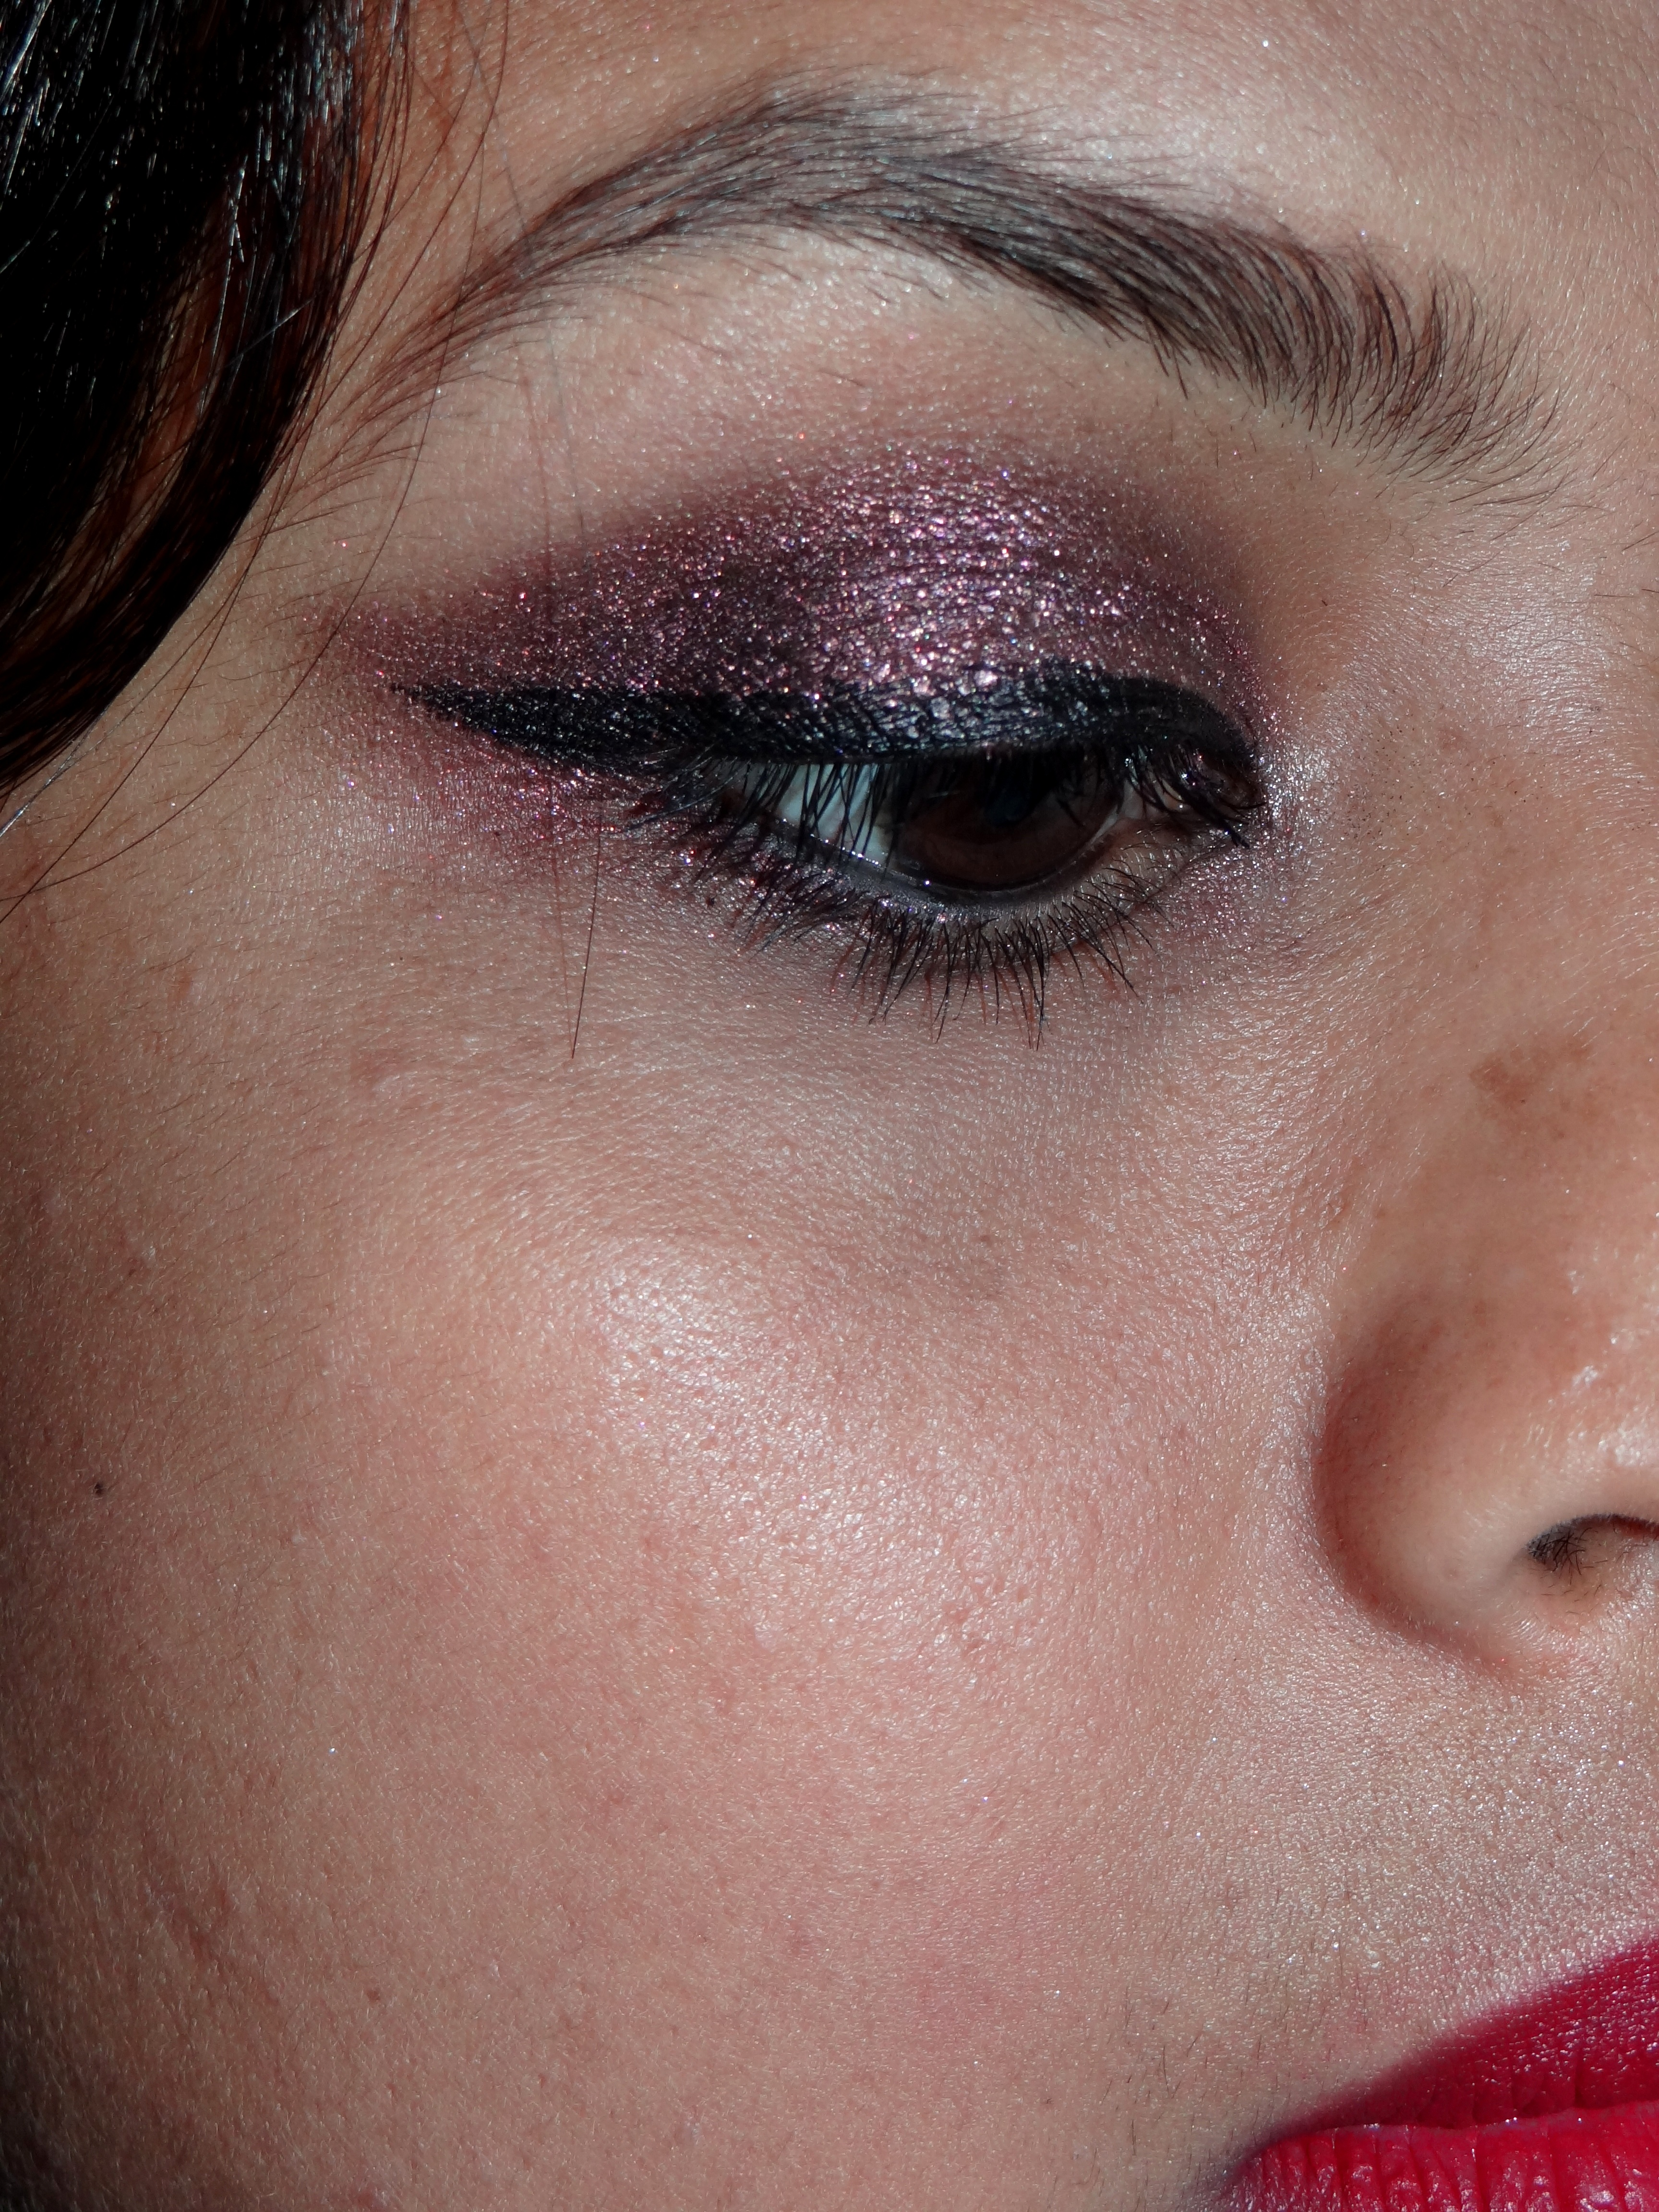 Maybelline Color Tattoo Eyeshadow Pomegranate Punk Review | Be ...